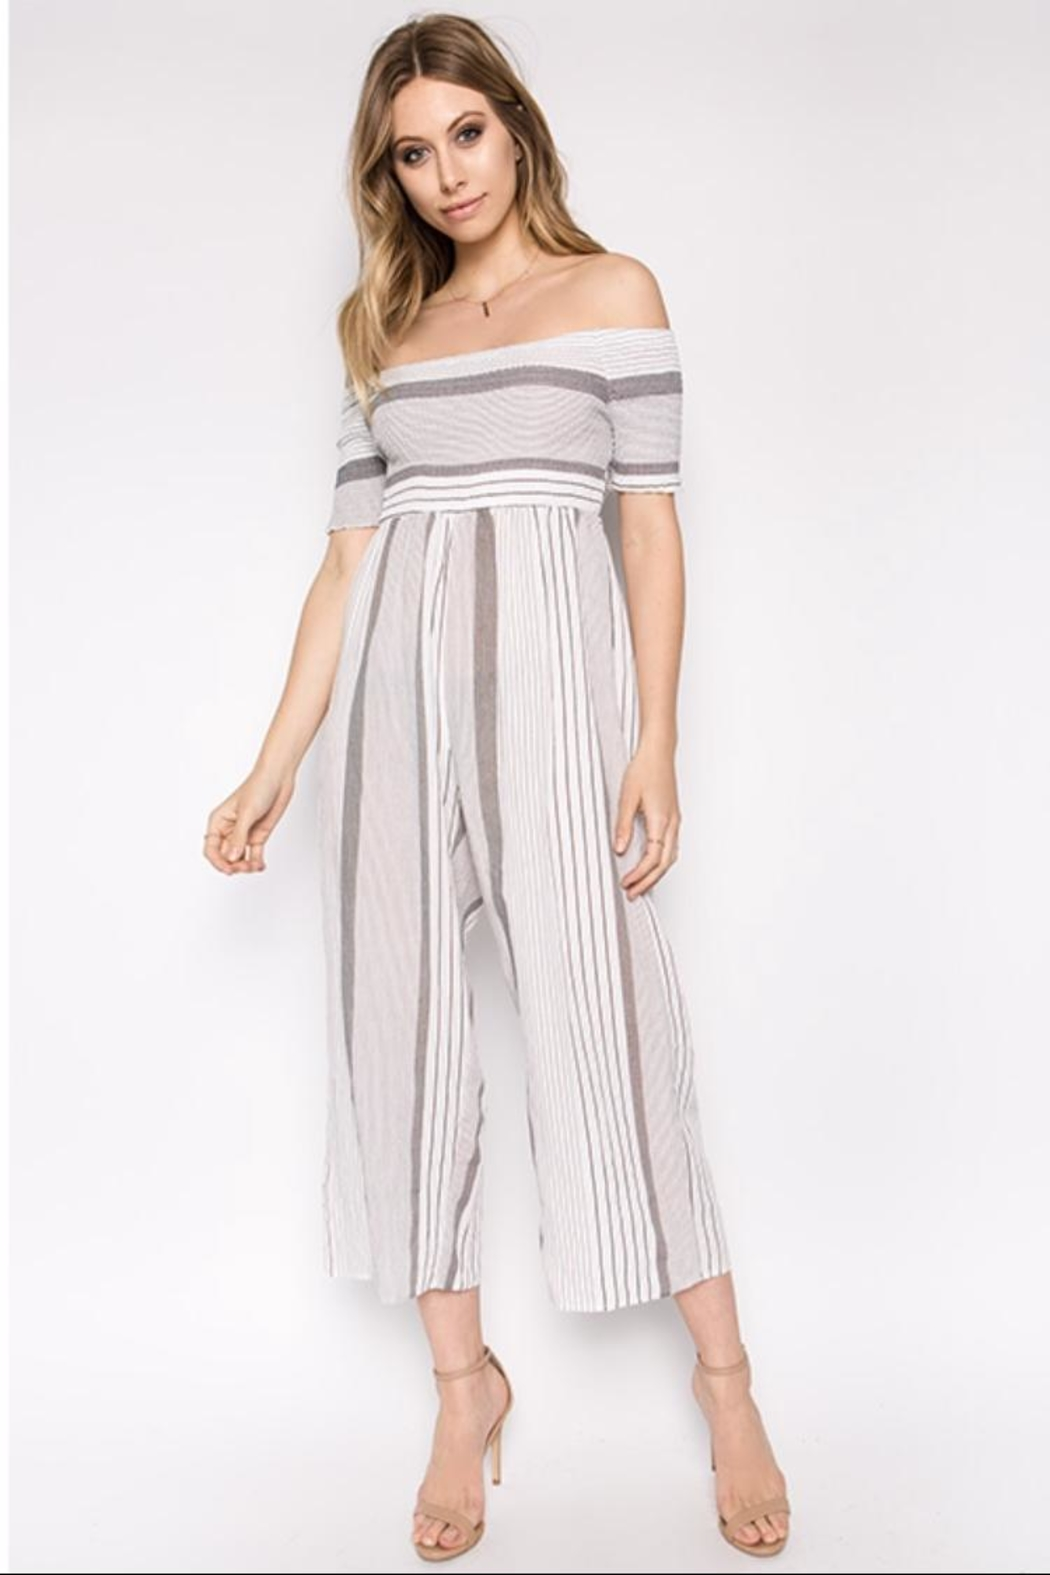 hers and mine Striped Off-Shoulder Jumpsuit - Main Image